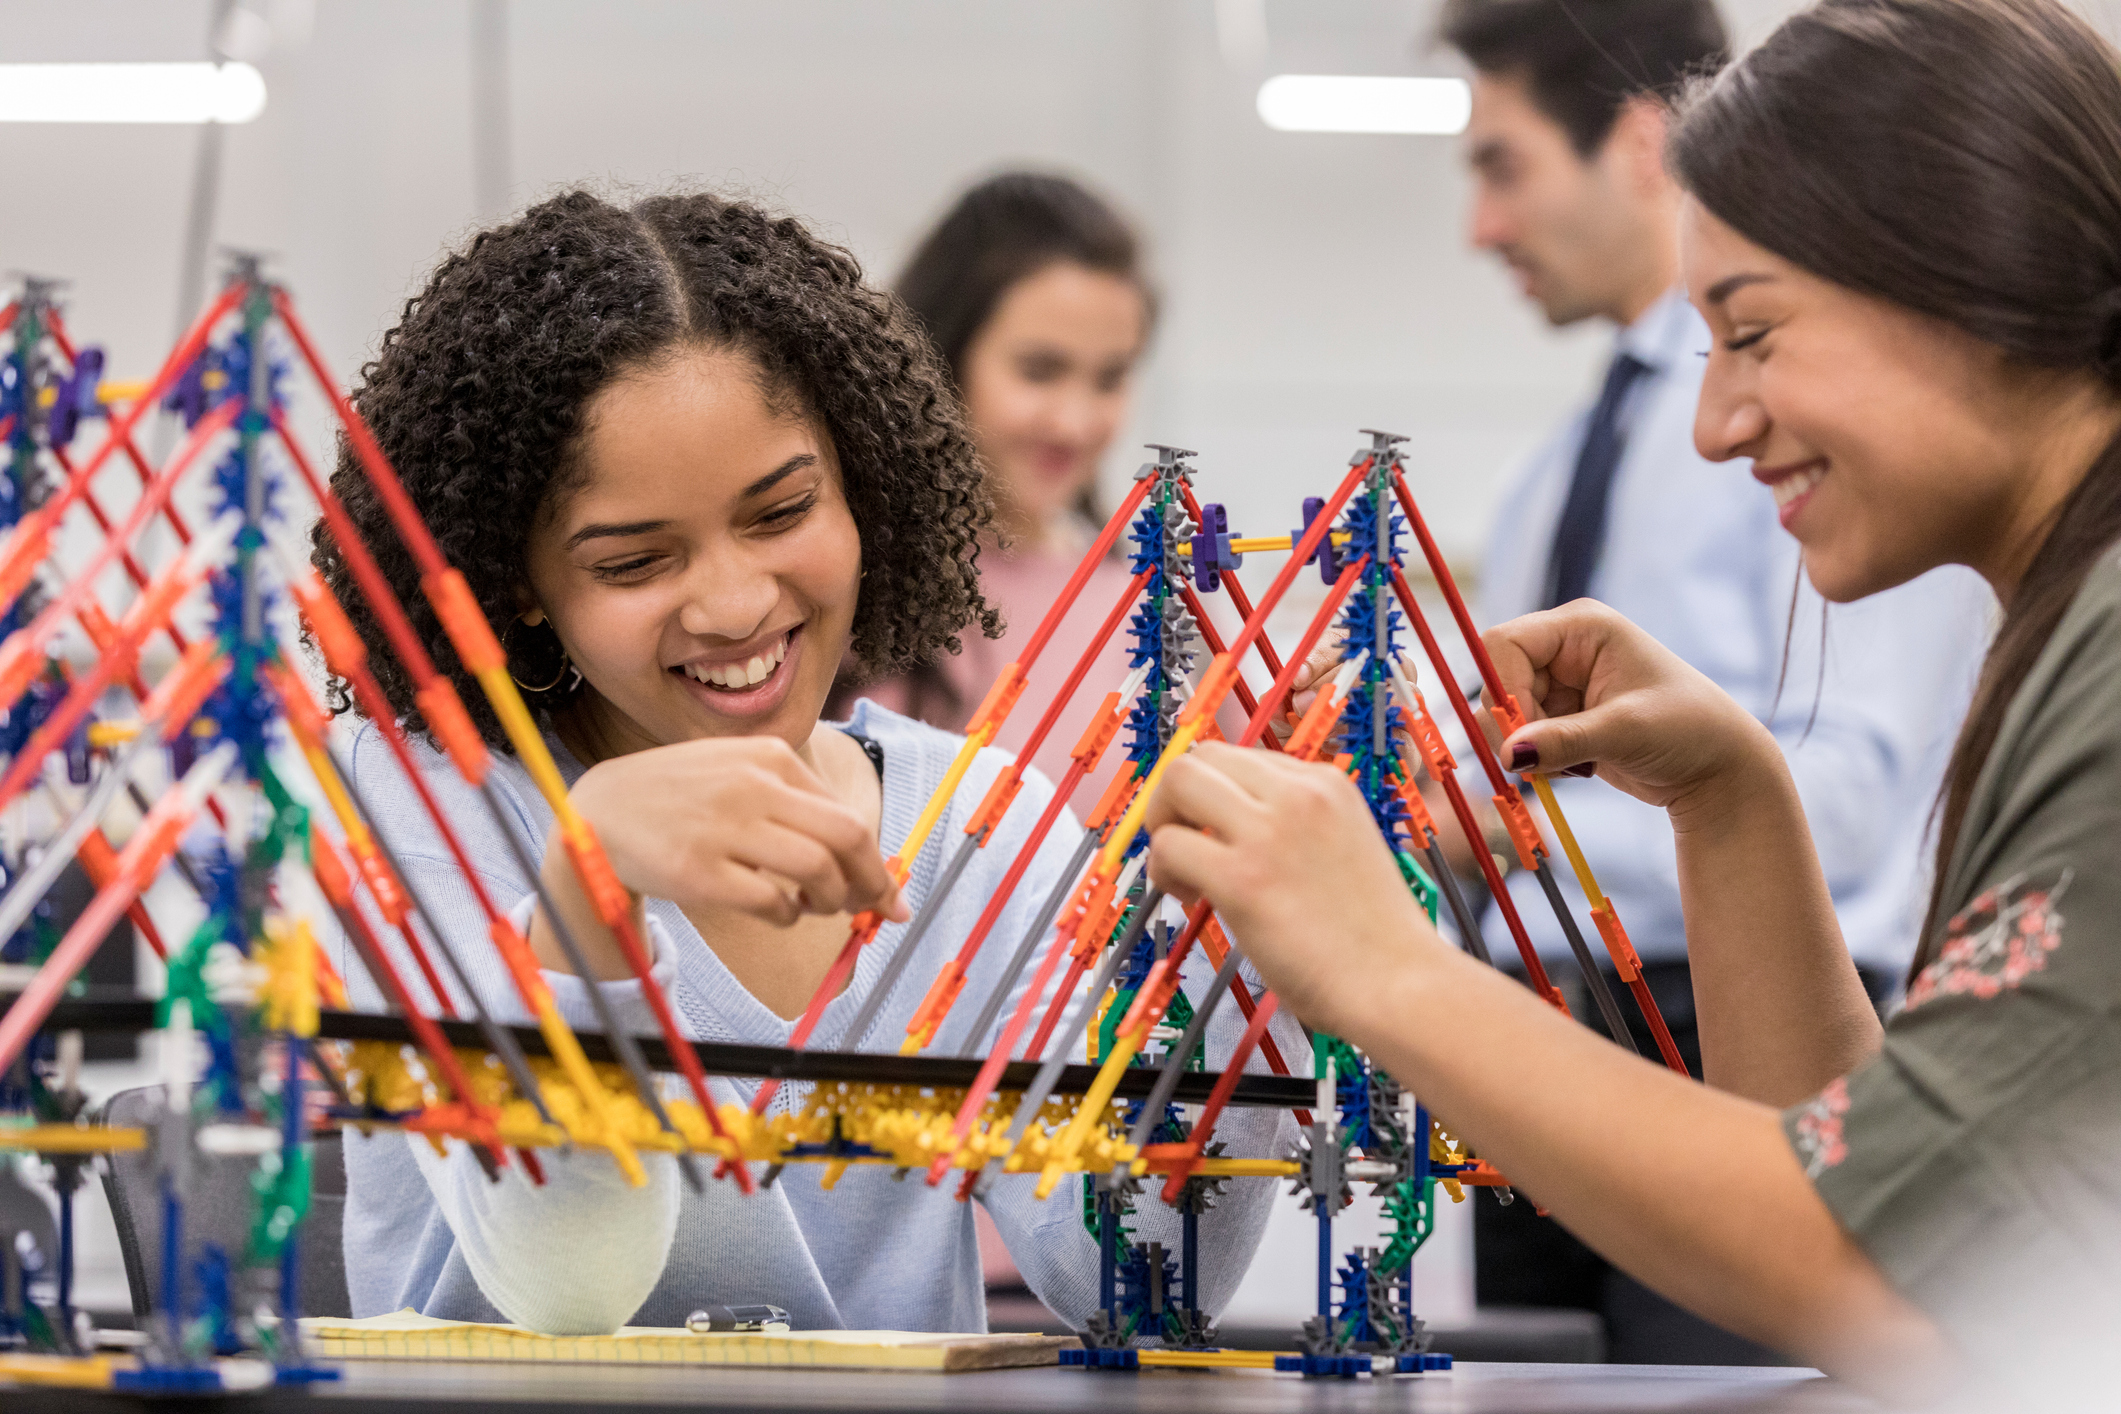 Image of Students working on a model